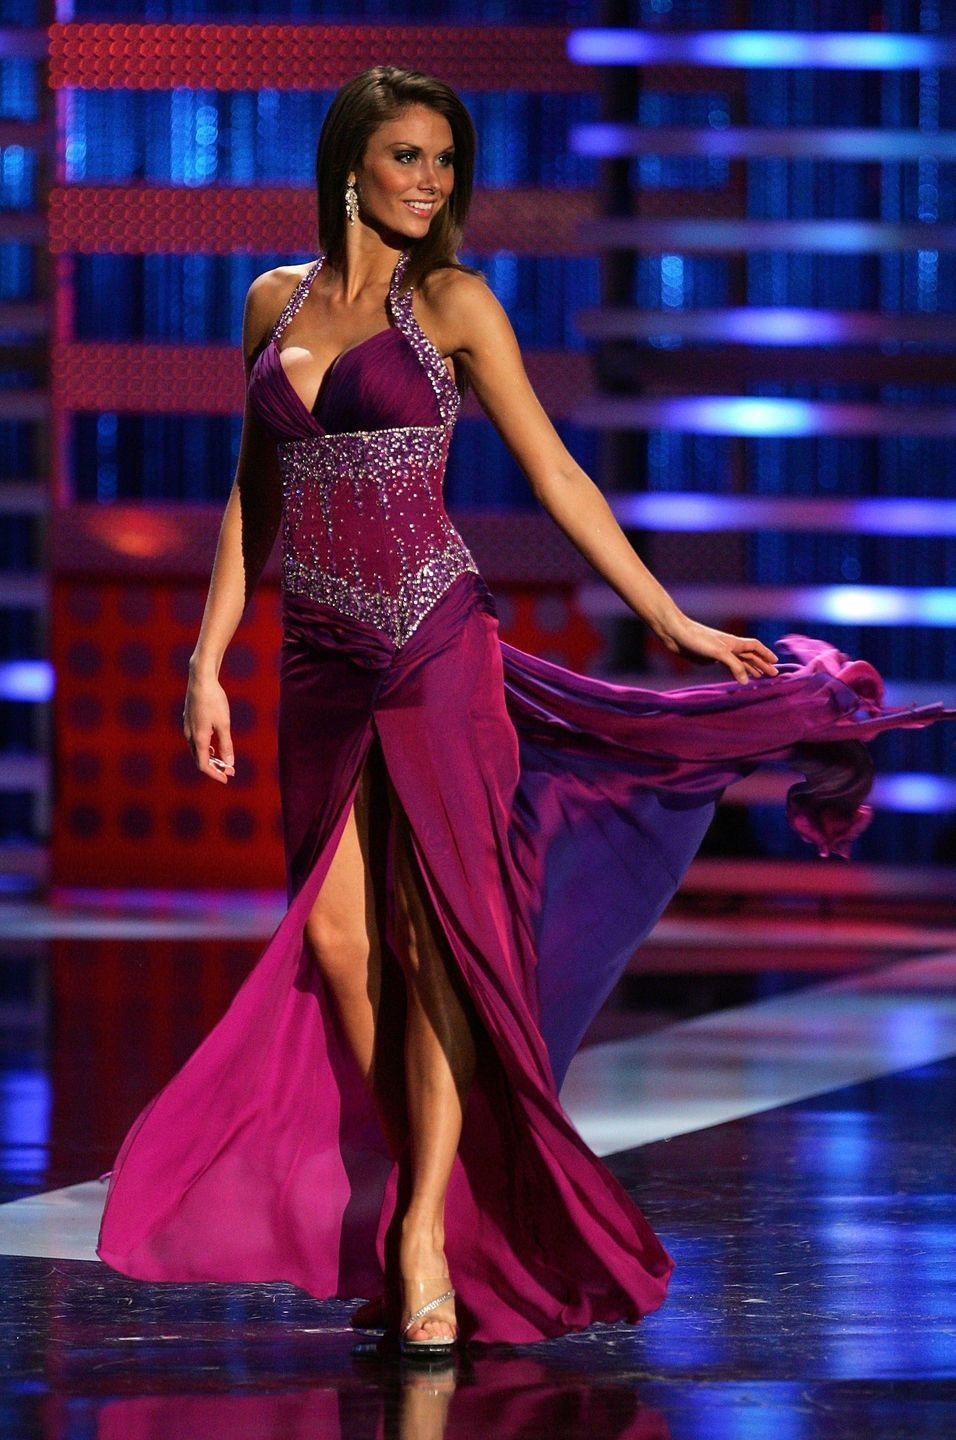 <p>They say purple is the color of royalty, and perhaps that's why 2008's Nicole Elizabeth Rash was the 1st runner-up in this glittery gown.</p>